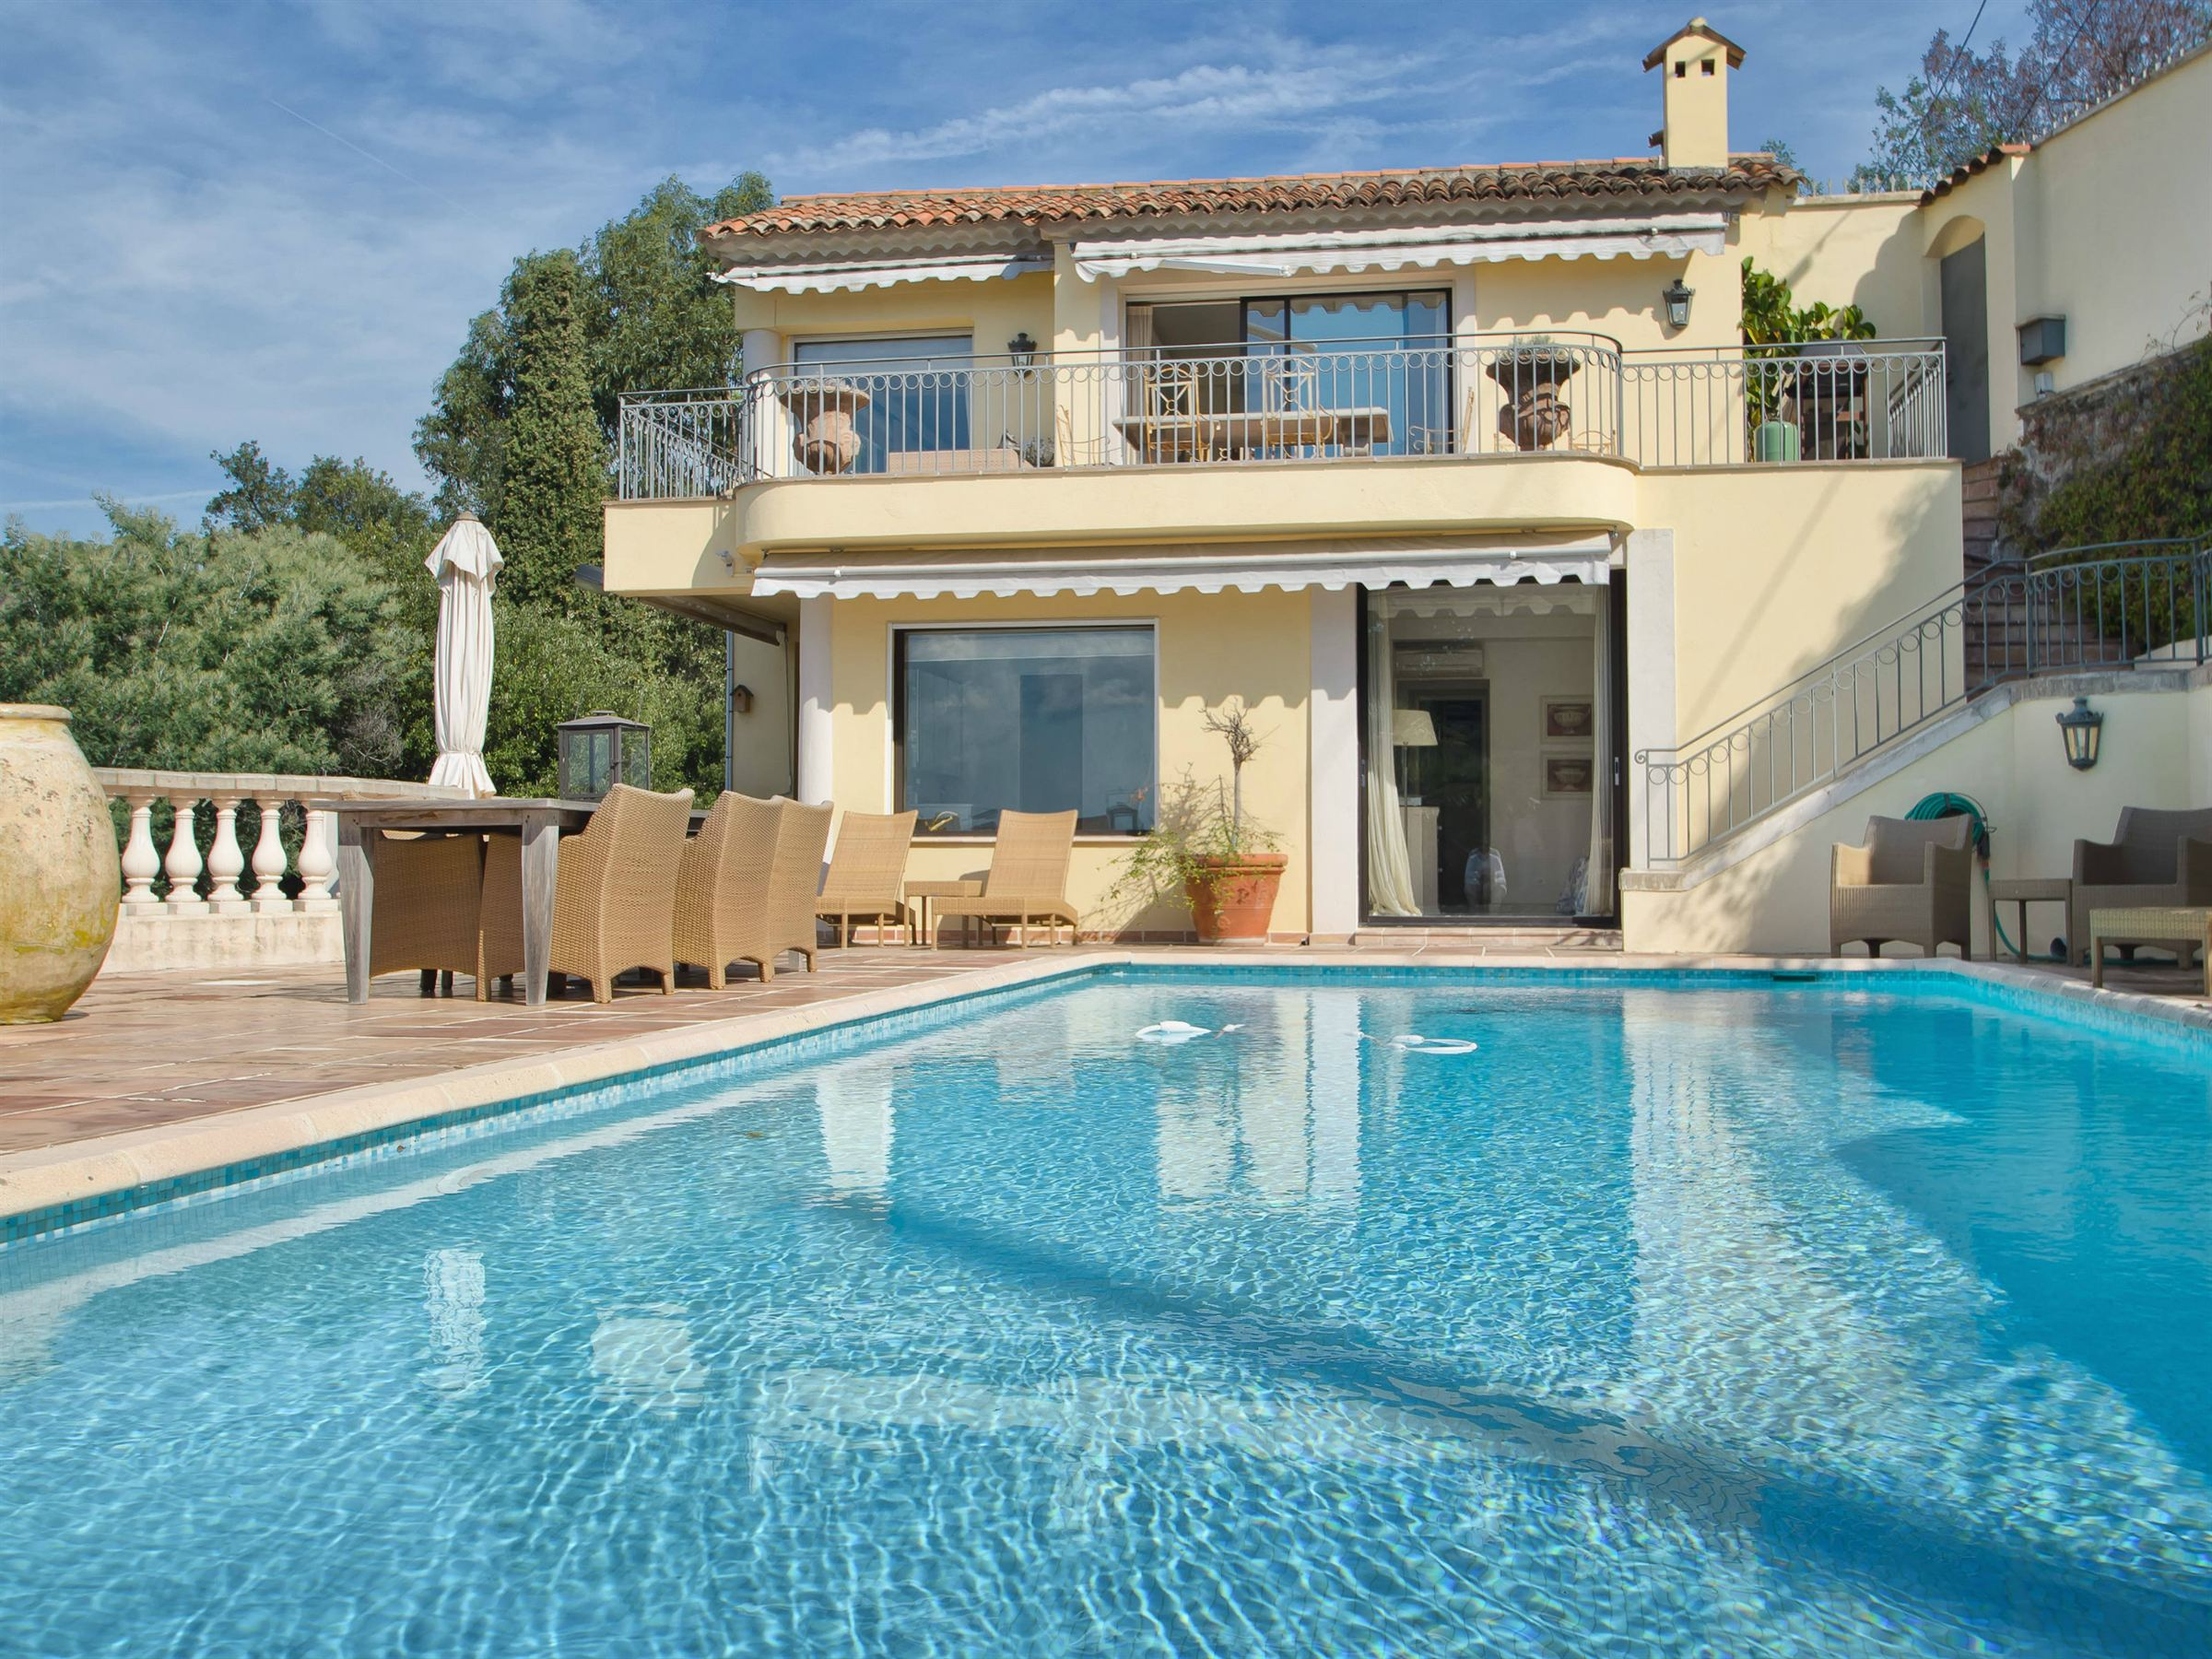 Casa Unifamiliar por un Venta en Cannes Californie - beautiful sea view Cannes, Provincia - Alpes - Costa Azul, 06400 Francia